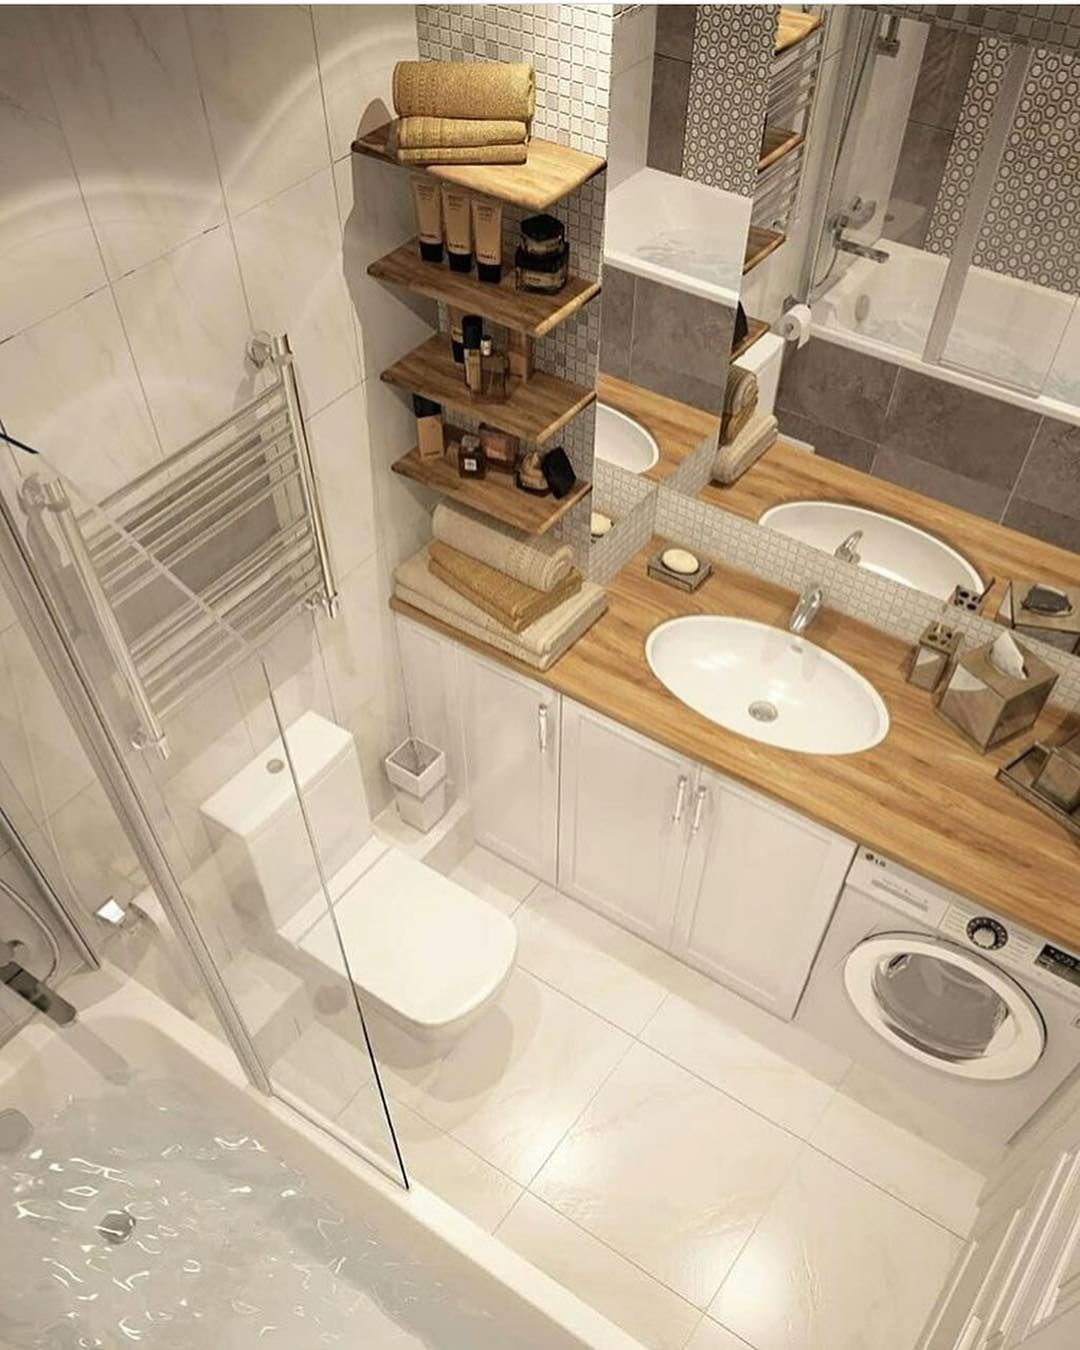 Bathroom spa washroom interior laundry also best small house images in rh pinterest